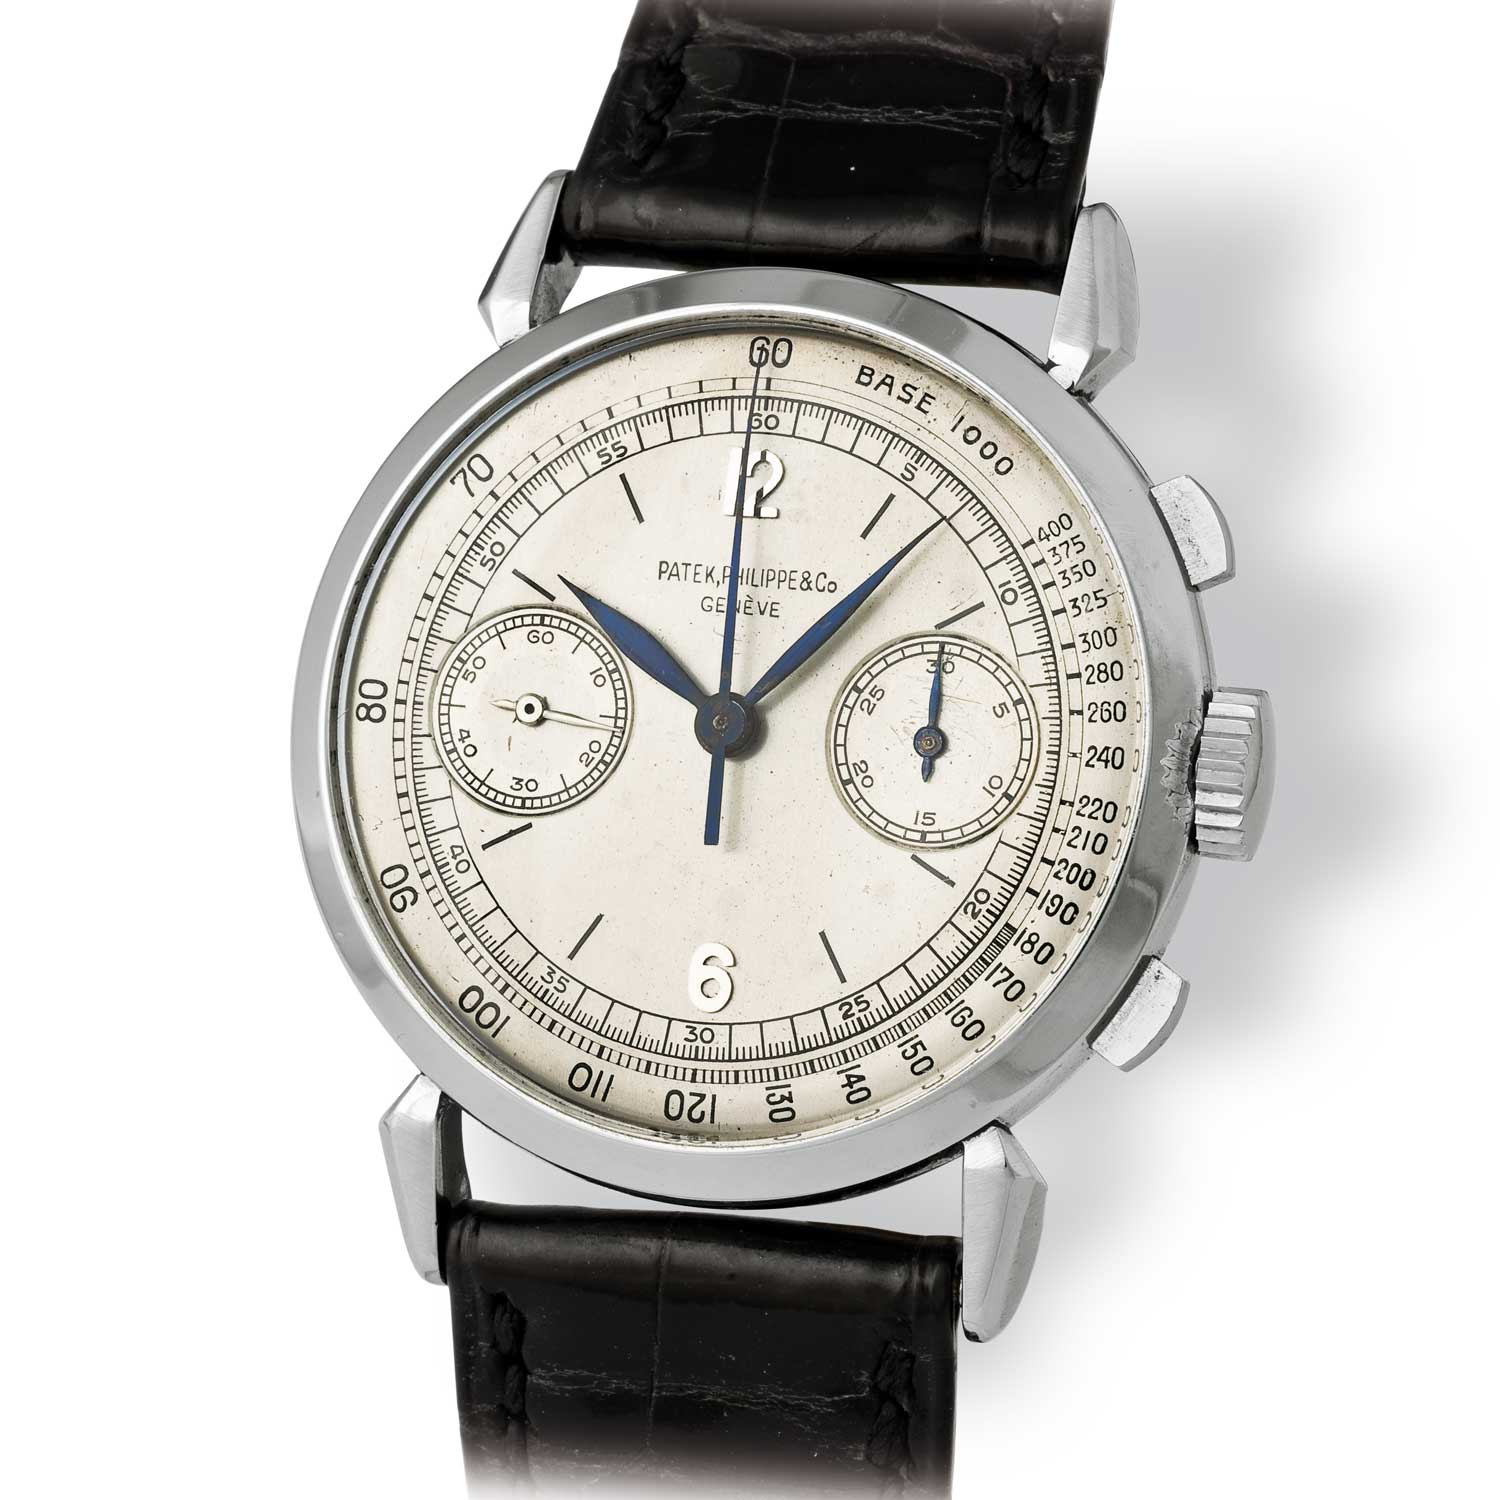 Patek Philippe ref. 1579 steel chronograph with Arabic numerals (Image: John Goldberger)